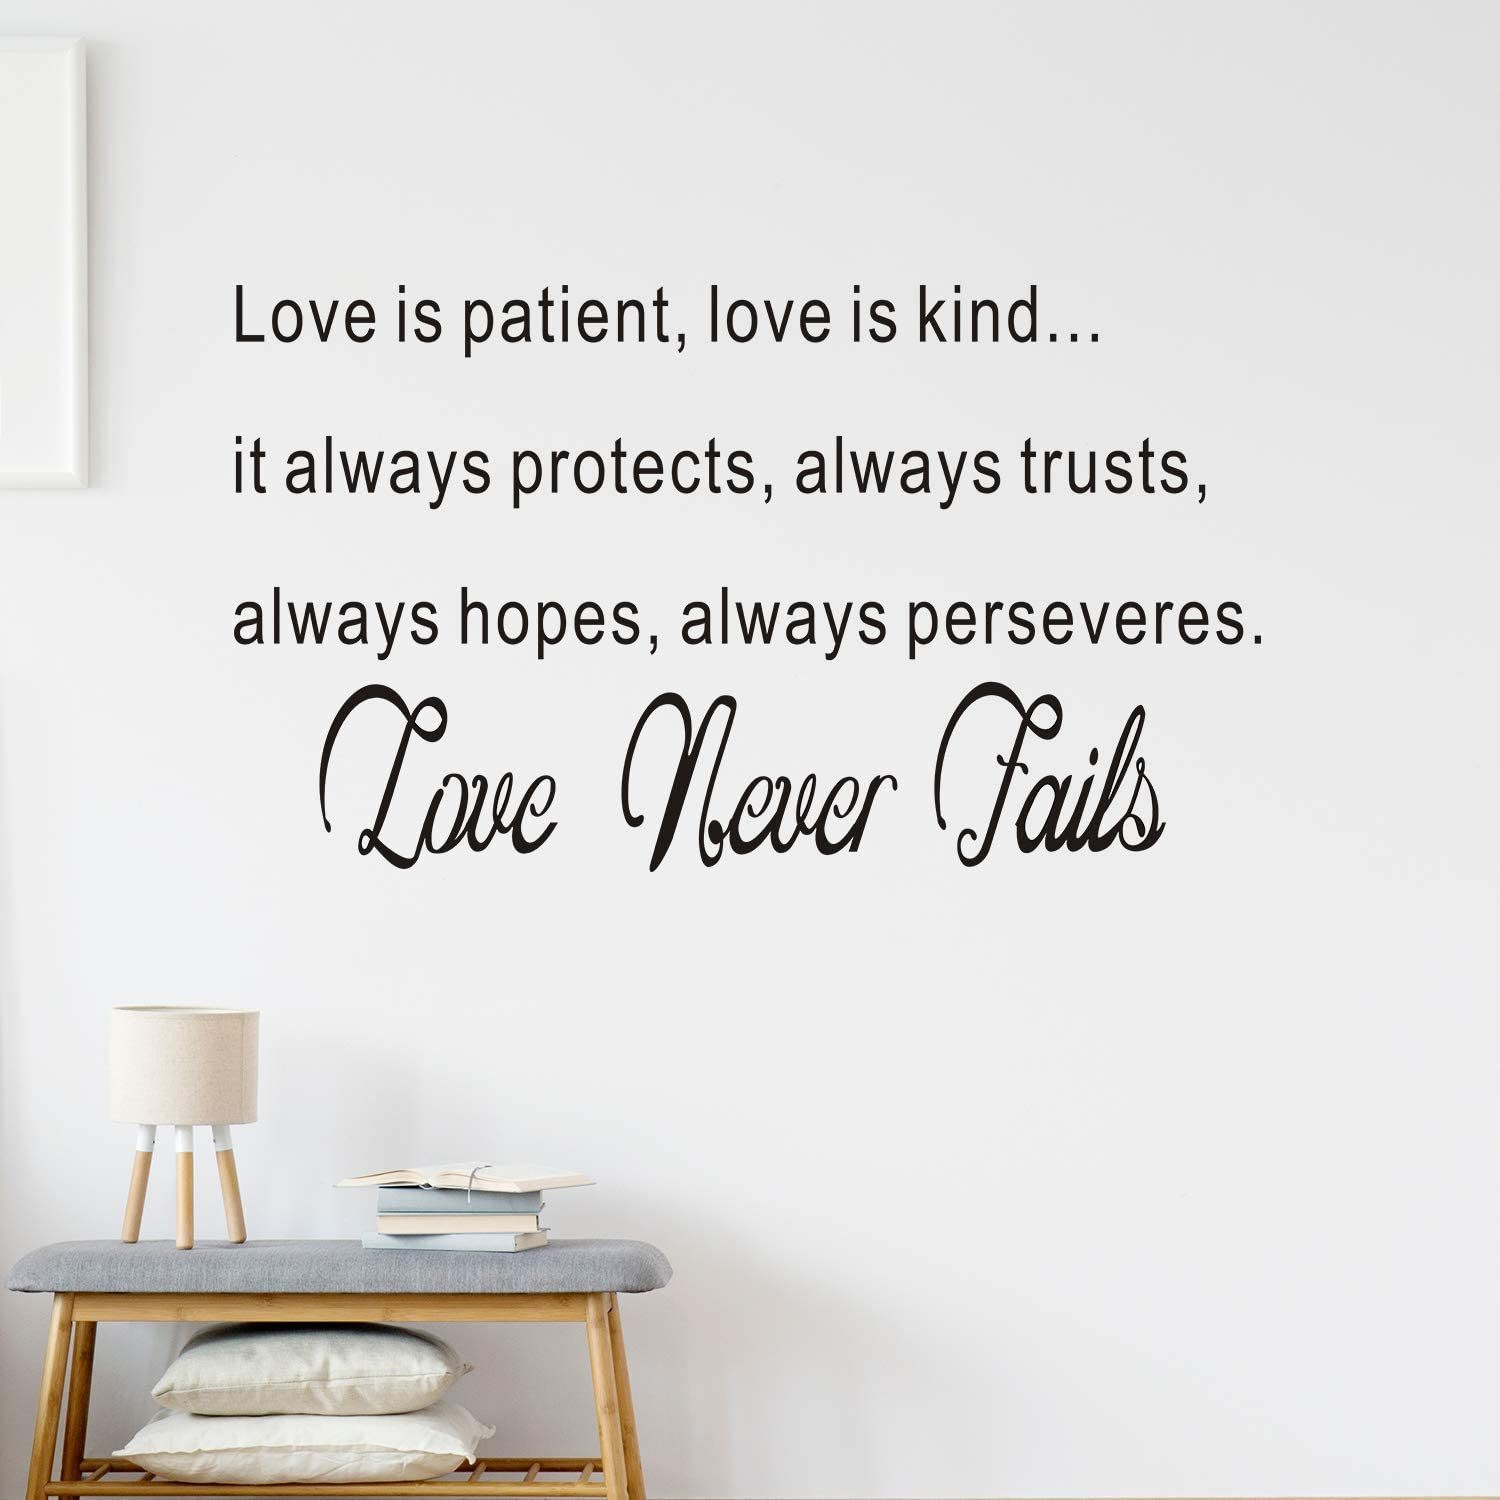 VODOE Quotes Wall Decal, Bedroom Wall Decal, Women Girls Living Room Wedding Blessed Couple Marriage Picture Sign Home Art Decor Vinyl Stickers Love is Patient Love is Kind Love Never Fails 28